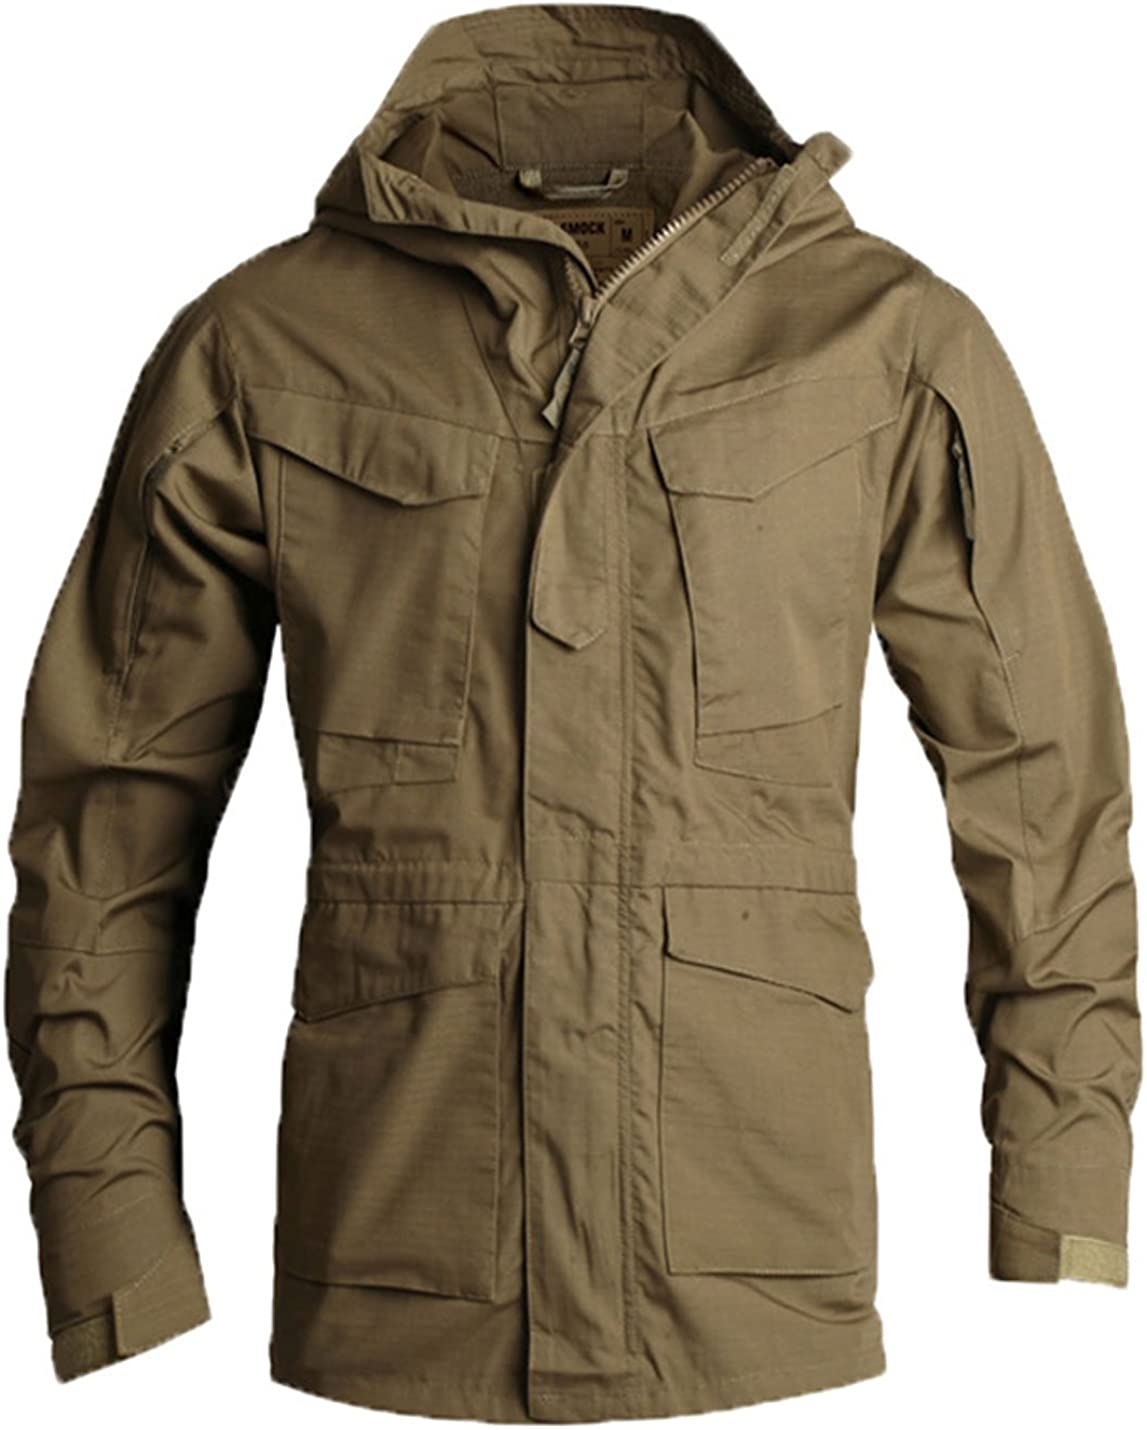 Flygo Men's Oklahoma City Mall Classic Ranking TOP2 M65 Field Jacket Hooded Tactical Lightweight